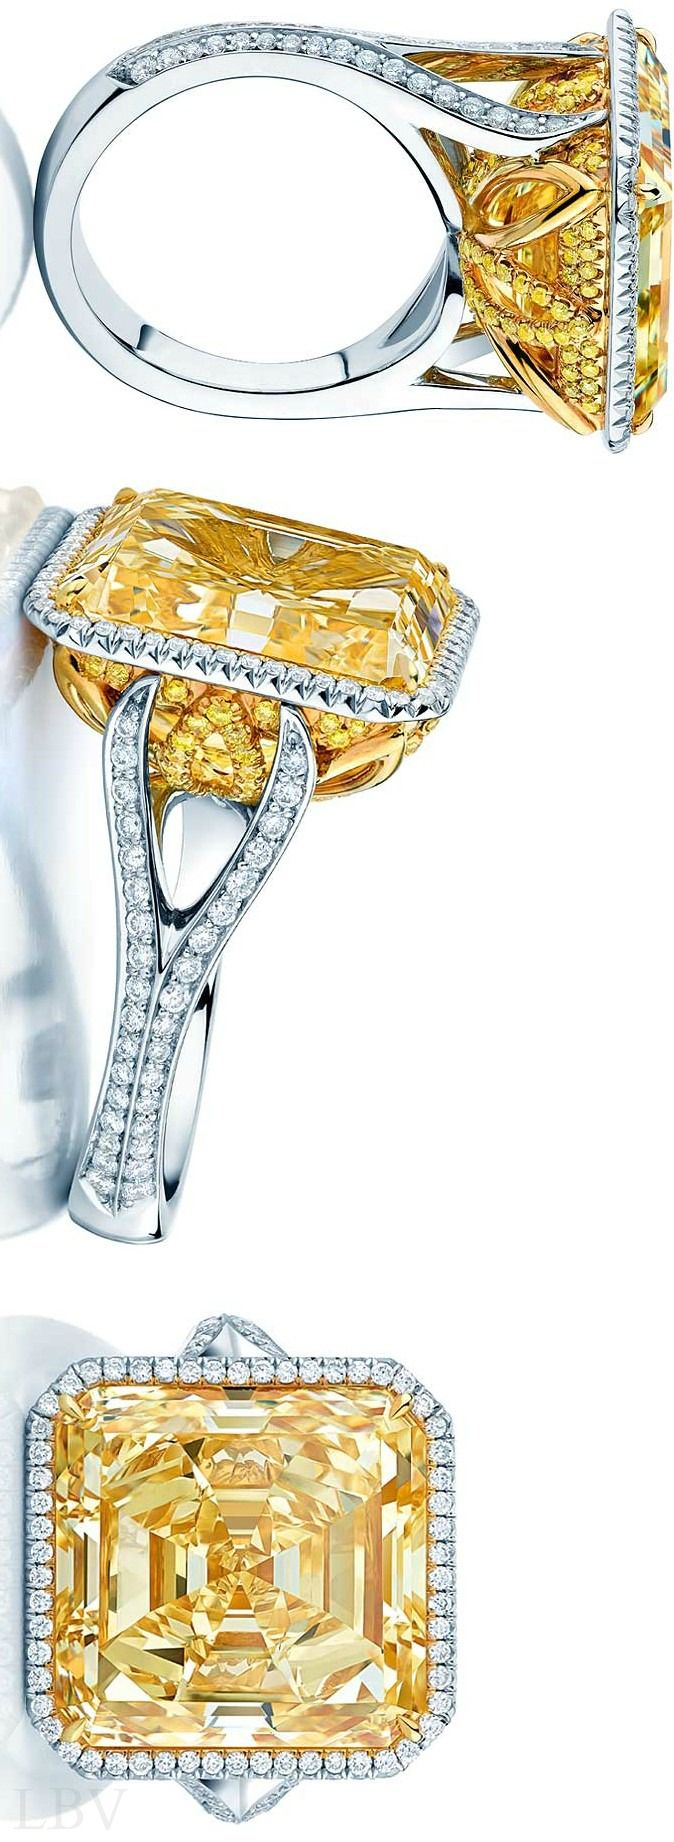 Engagement-Rings-Chicago-Geneva-Seal-Yellow-Diamonds.jpg